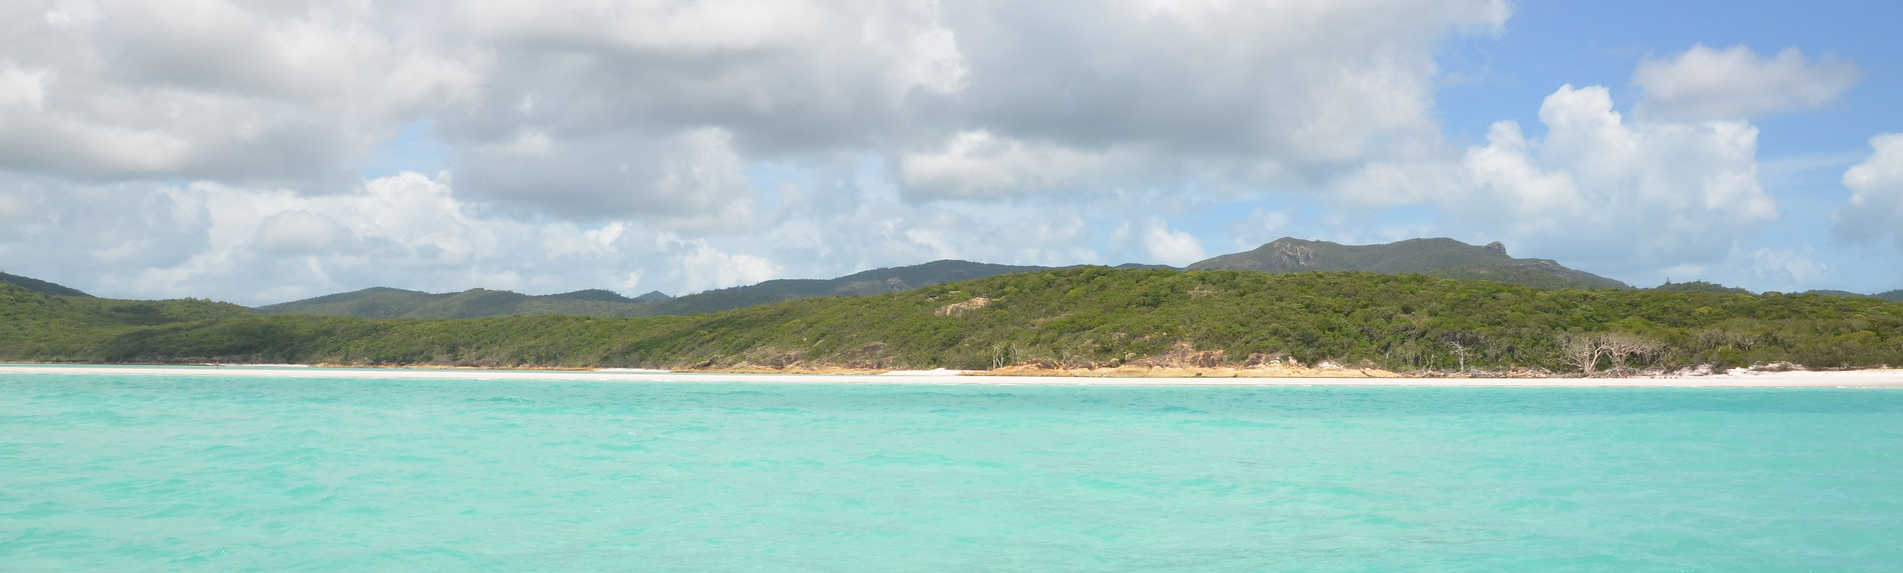 Are There Crocodiles in the Whitsundays?